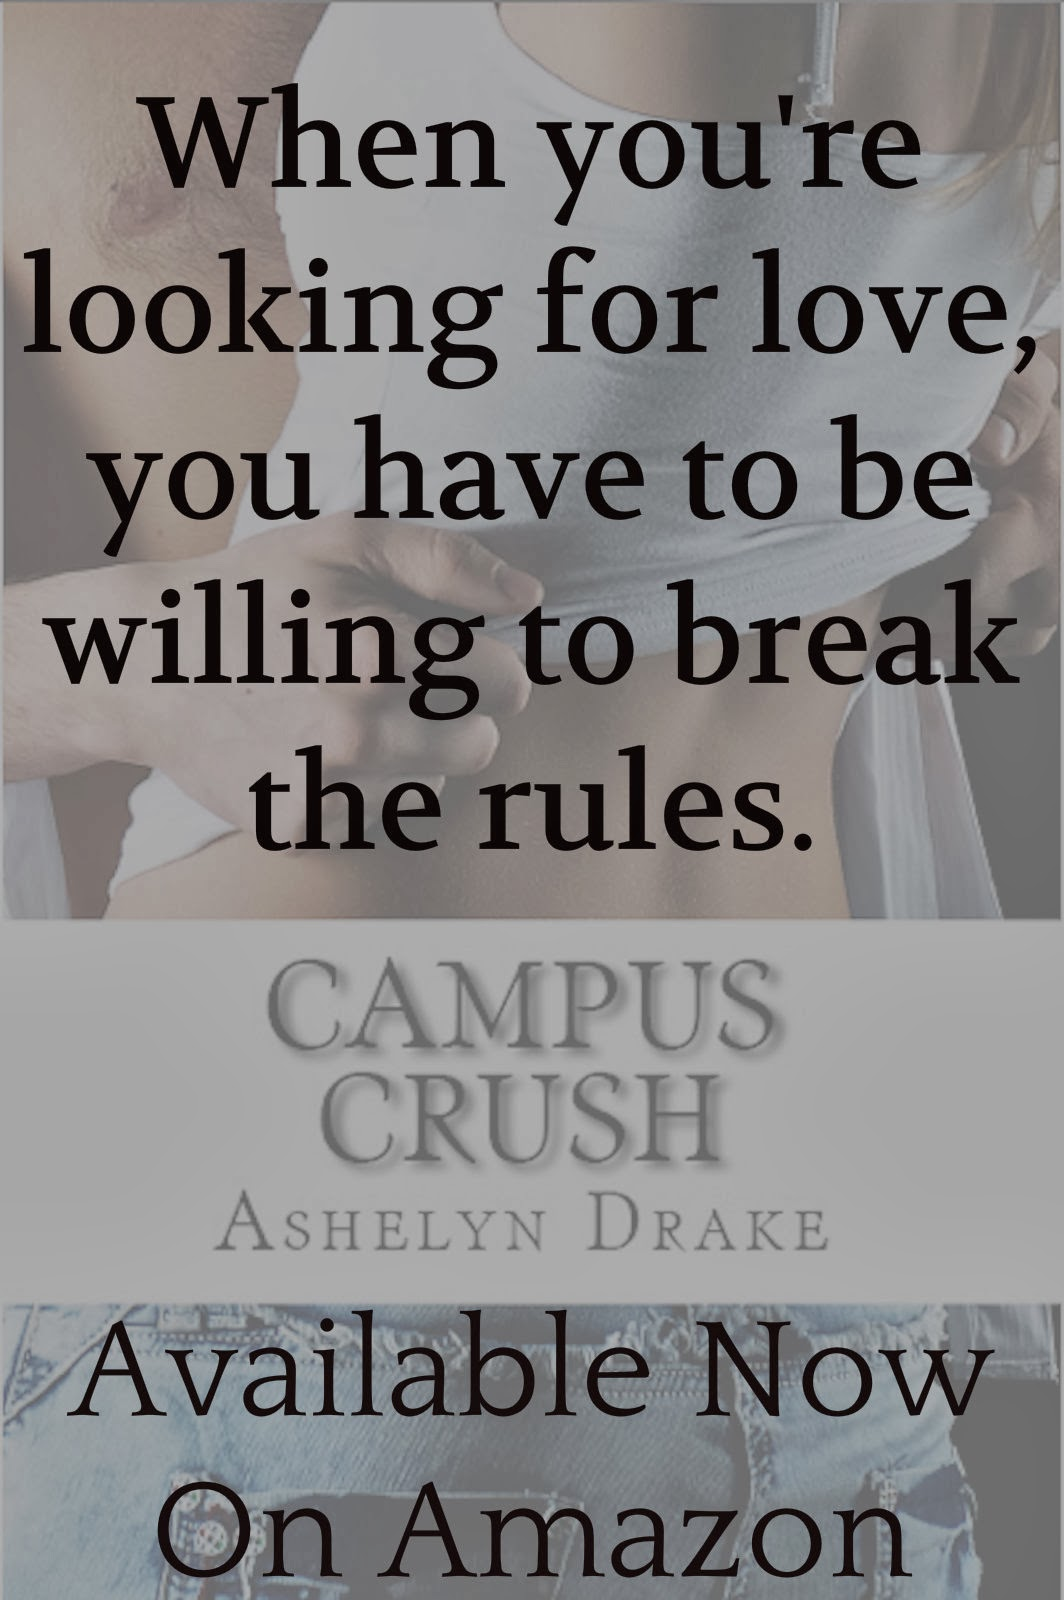 http://www.amazon.com/Campus-Crush-Ashelyn-Drake-ebook/dp/B00IK3NG0A/ref=sr_1_1?ie=UTF8&qid=1393573432&sr=8-1&keywords=campus+crush